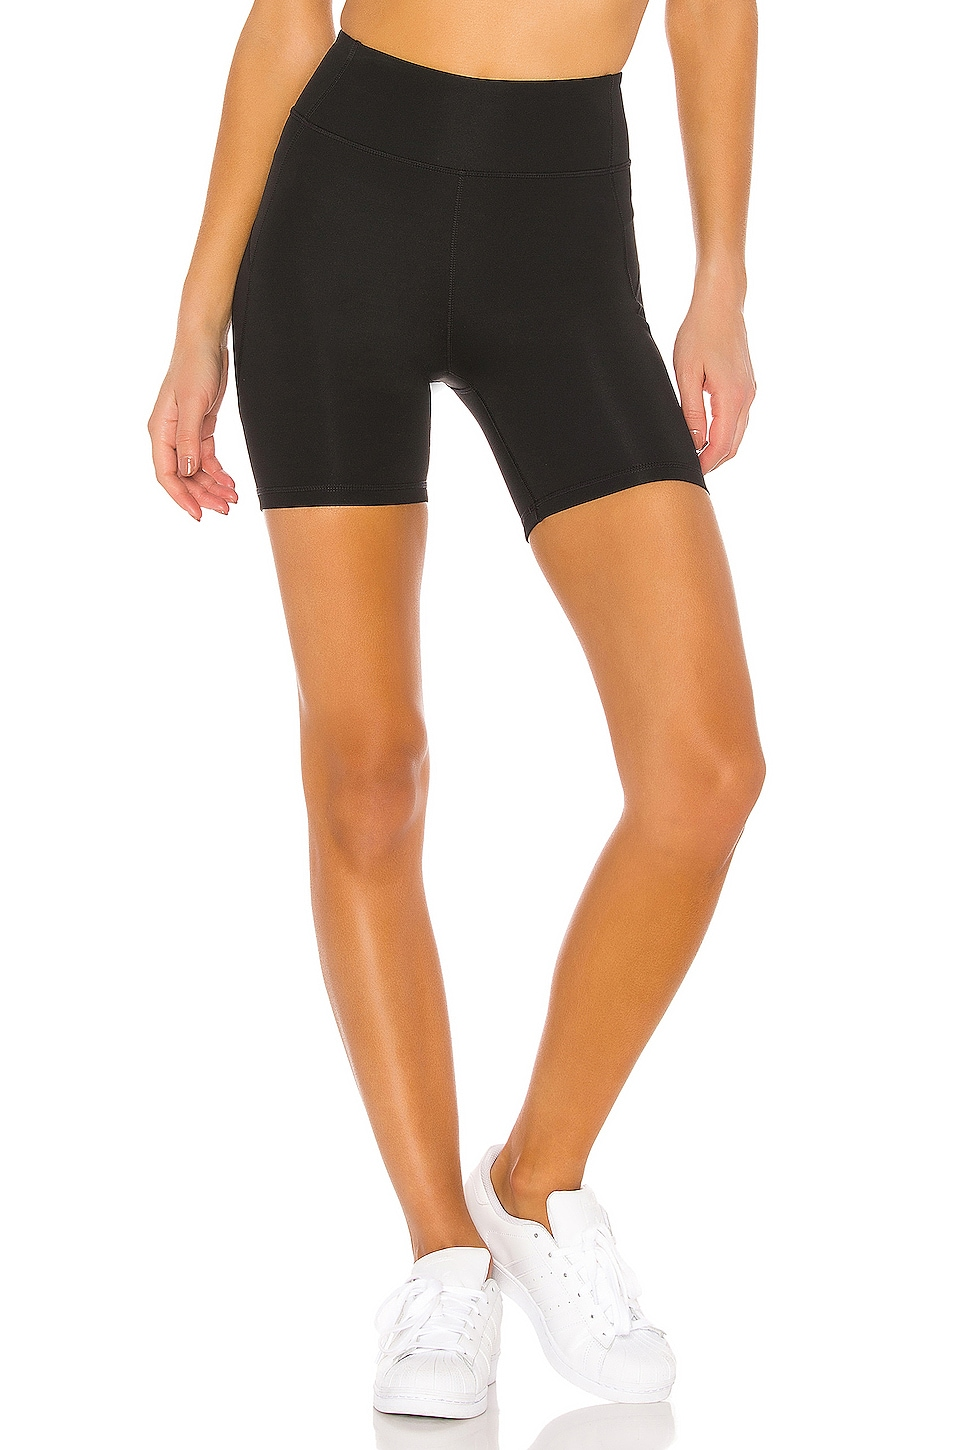 lovewave Olivia Short in Black